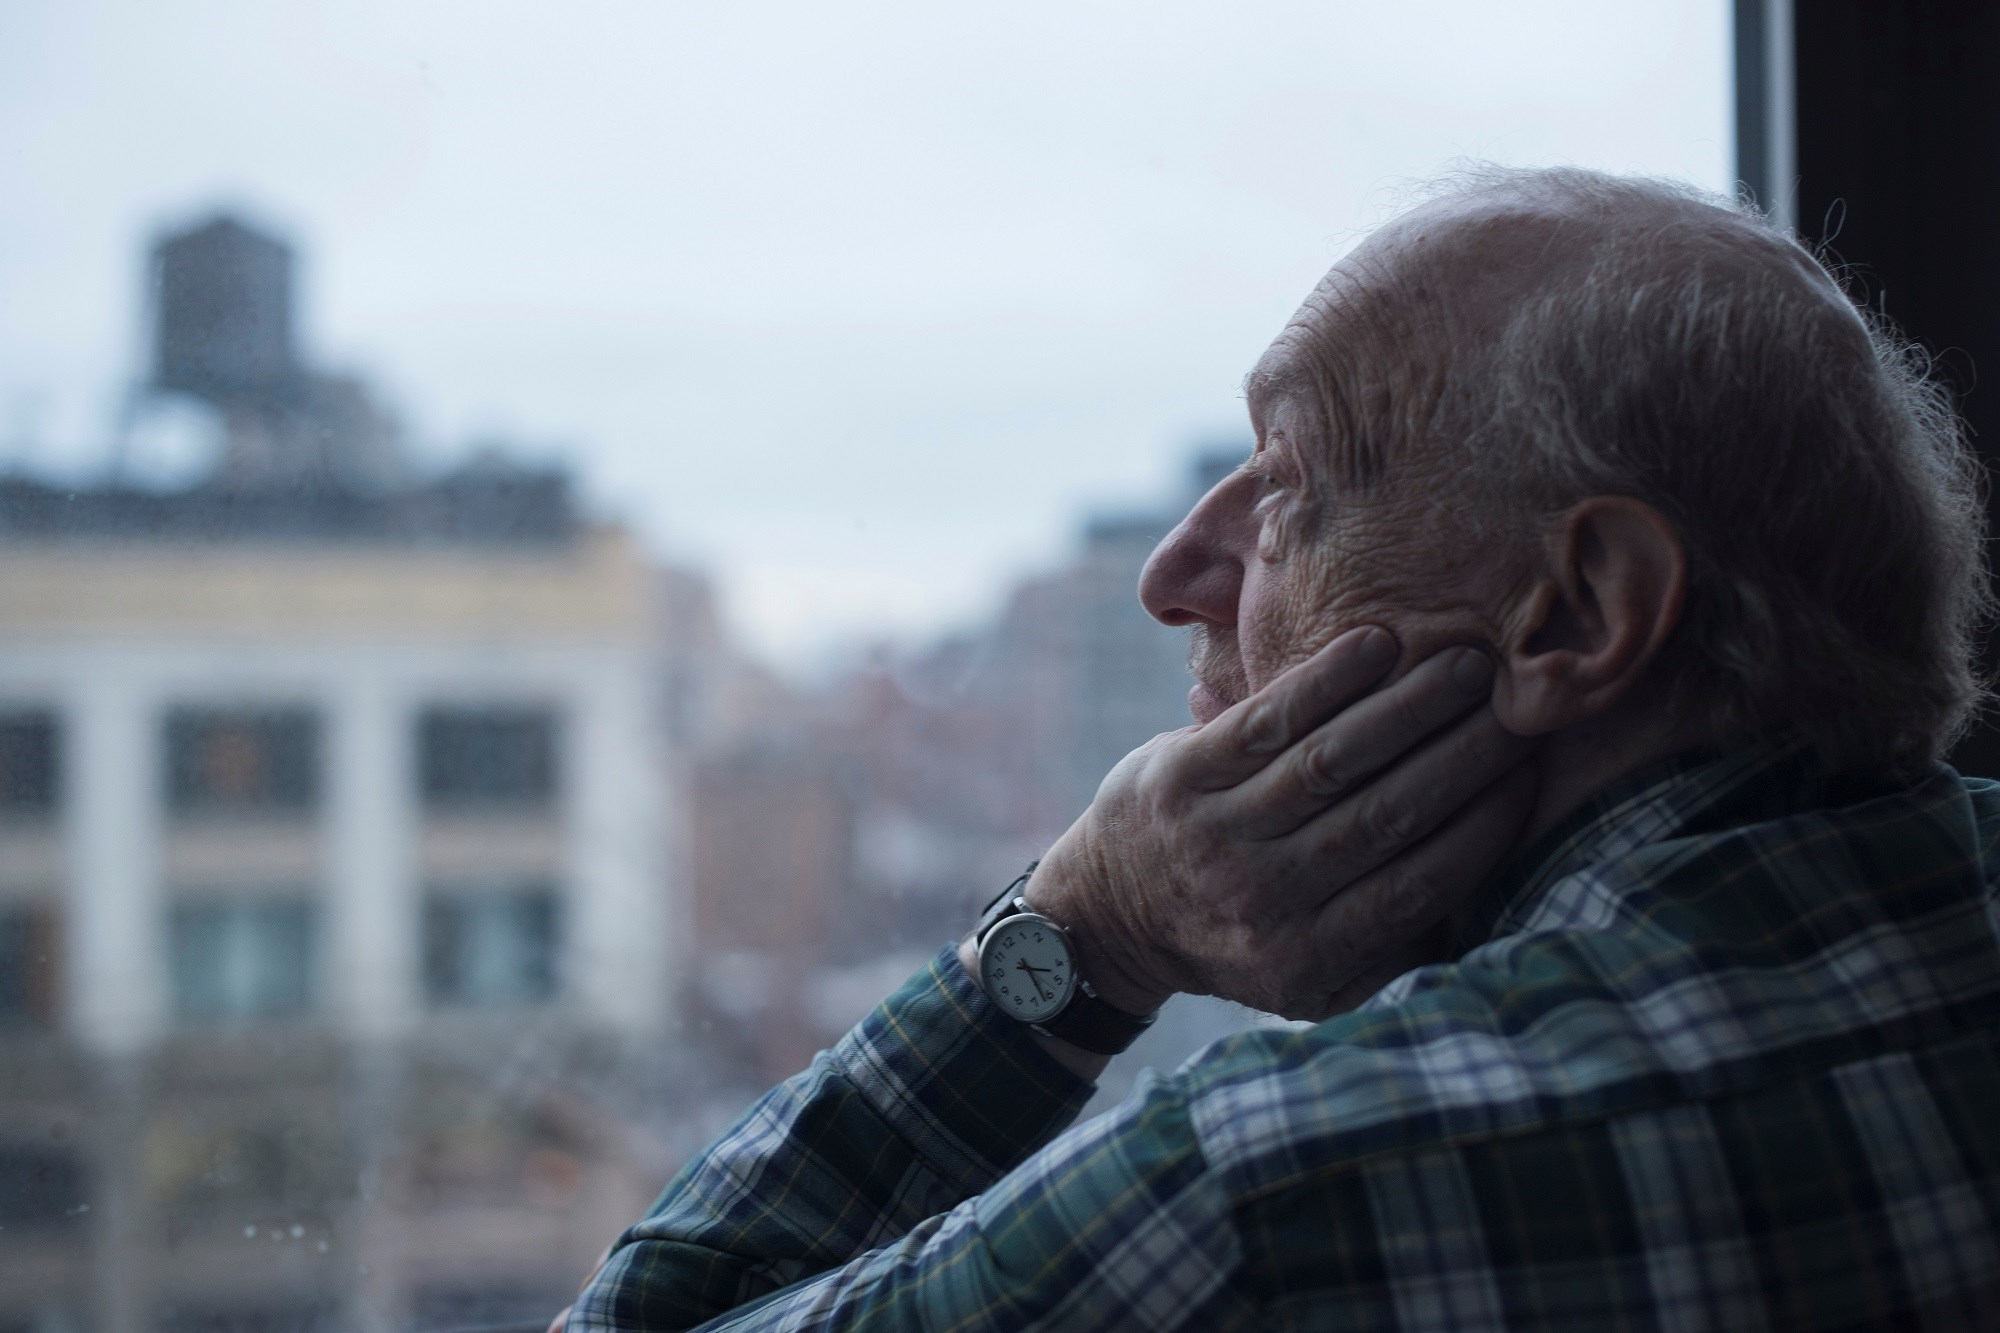 Apathy Associated With Increased Risk for Dementia